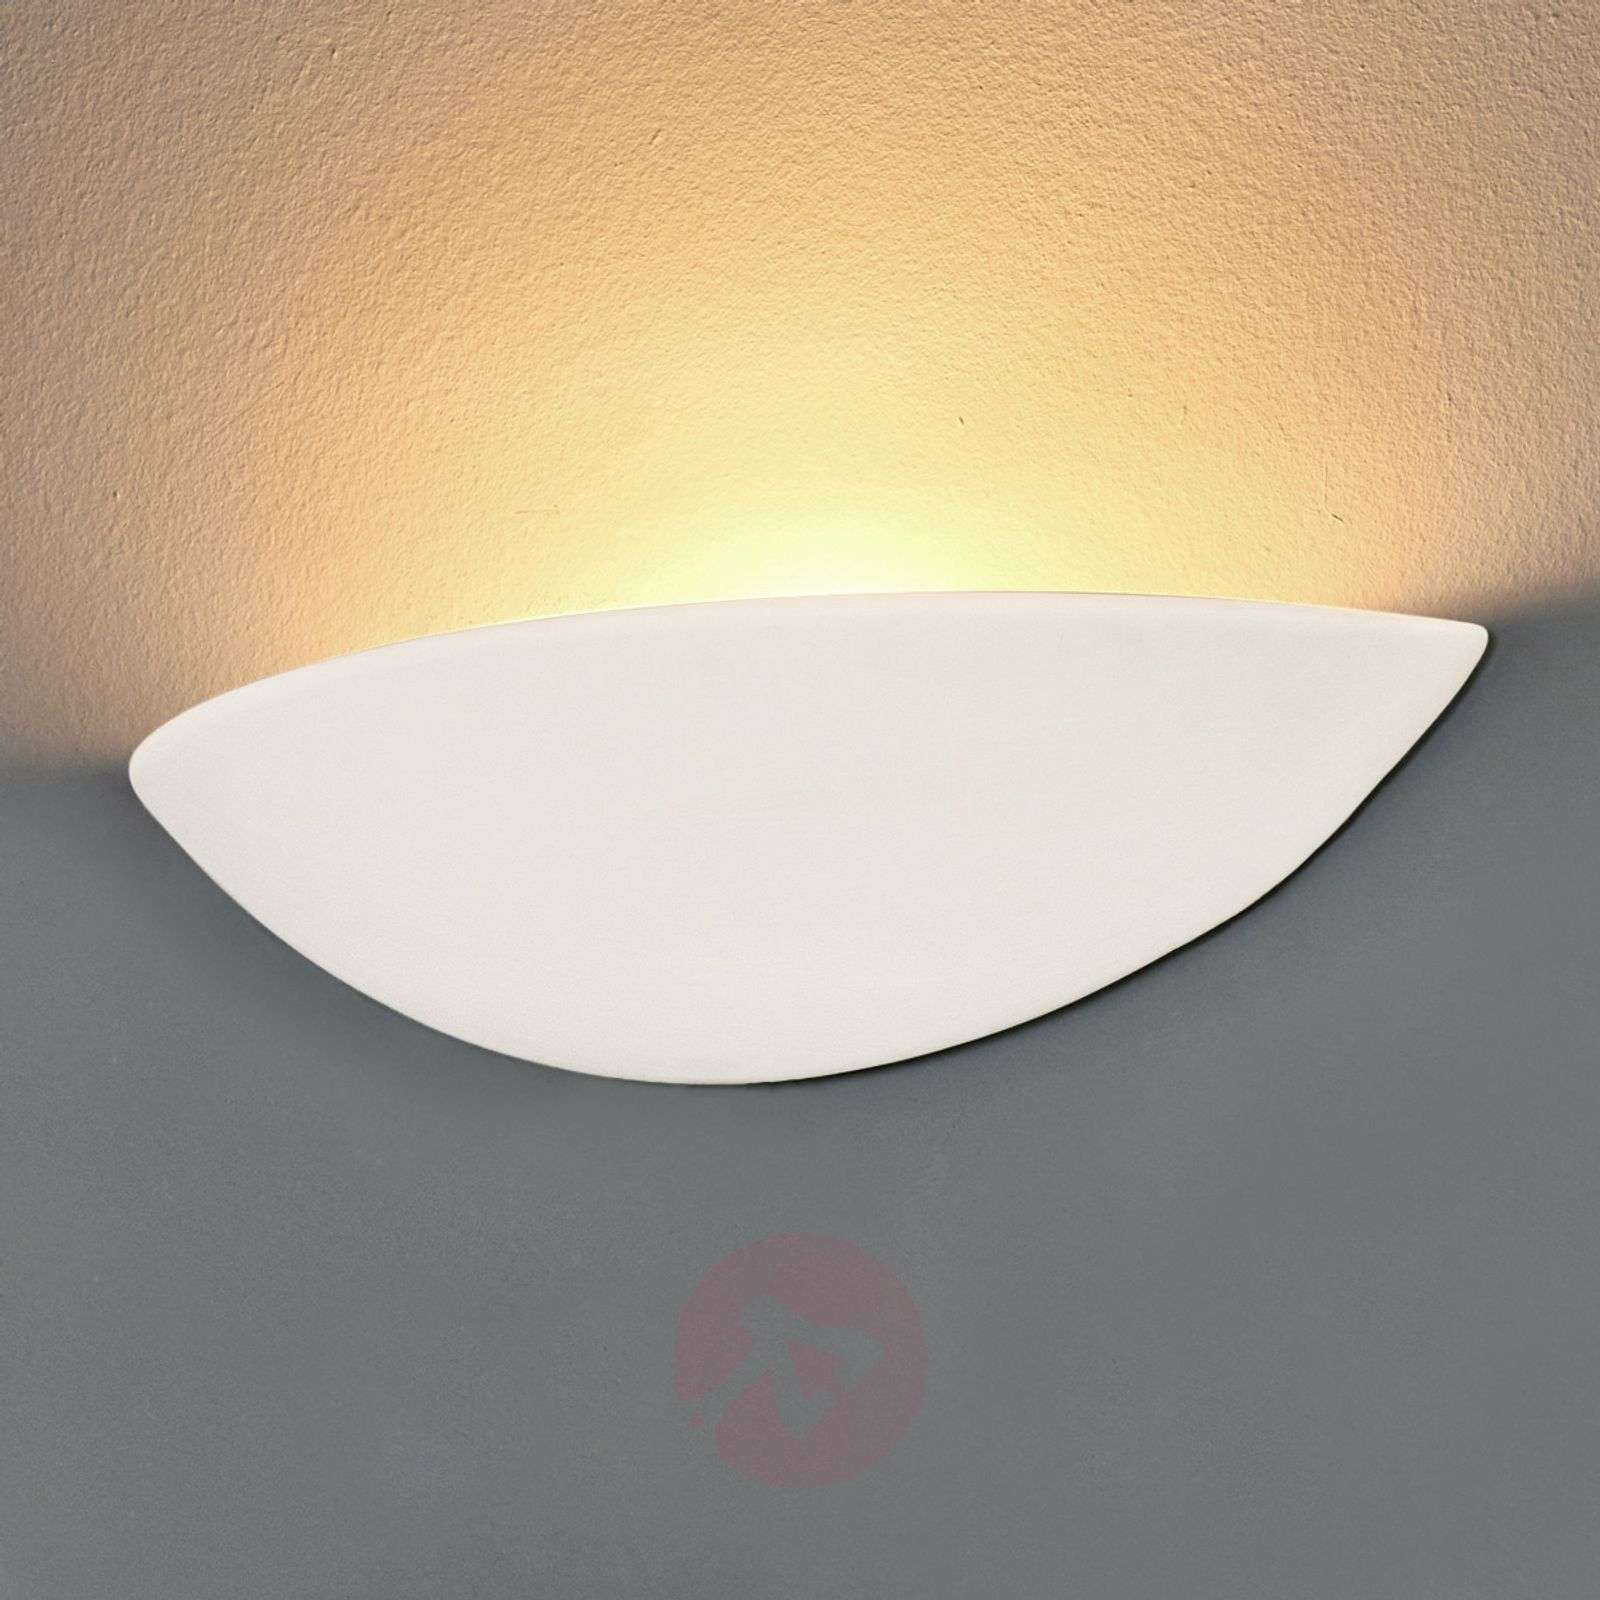 Pale Plaster Wall Light Paintable 8570466 01